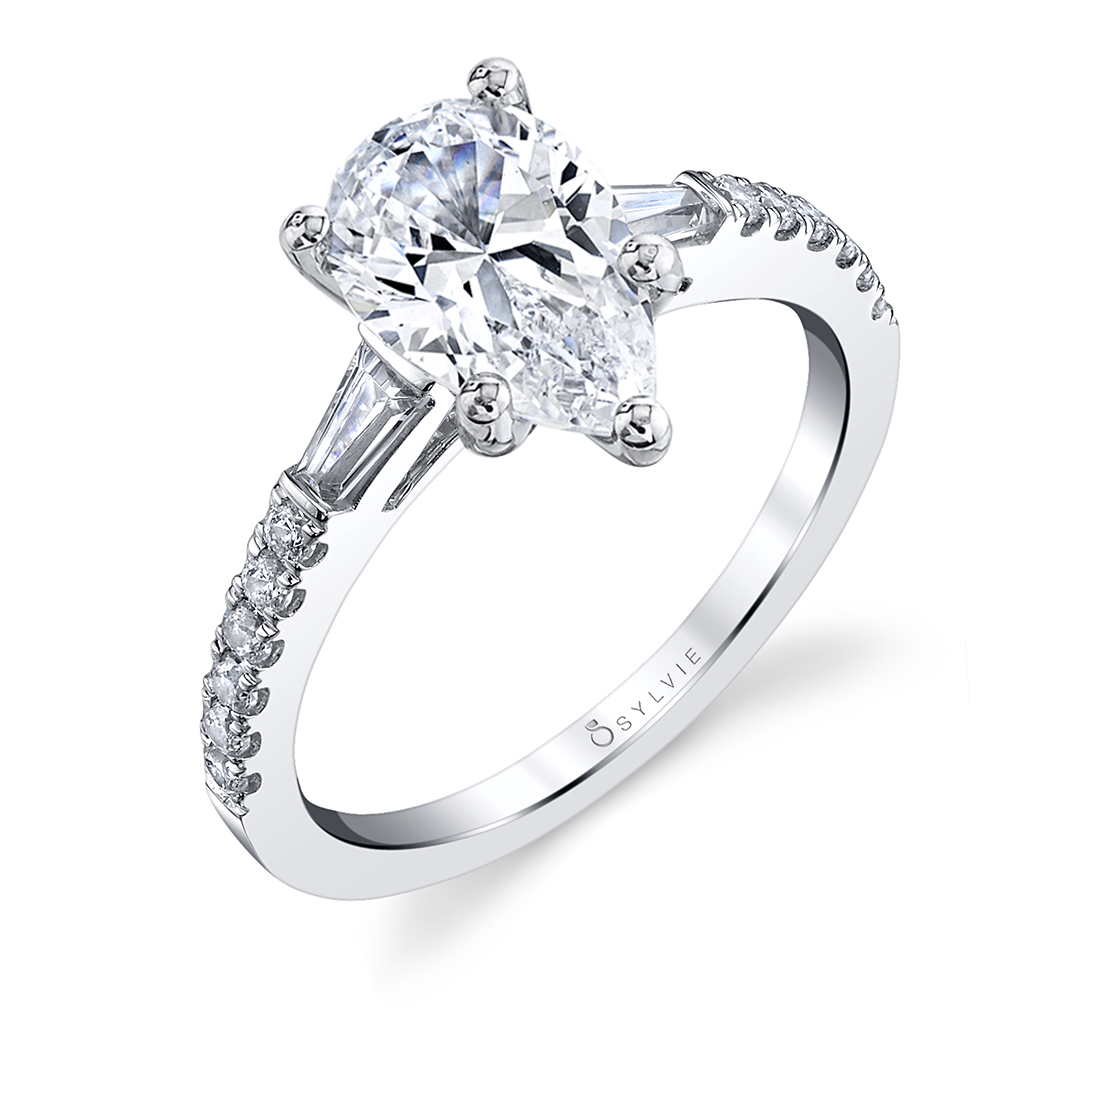 Pear Shaped Engagement Ring with Baguettes shown in white gold